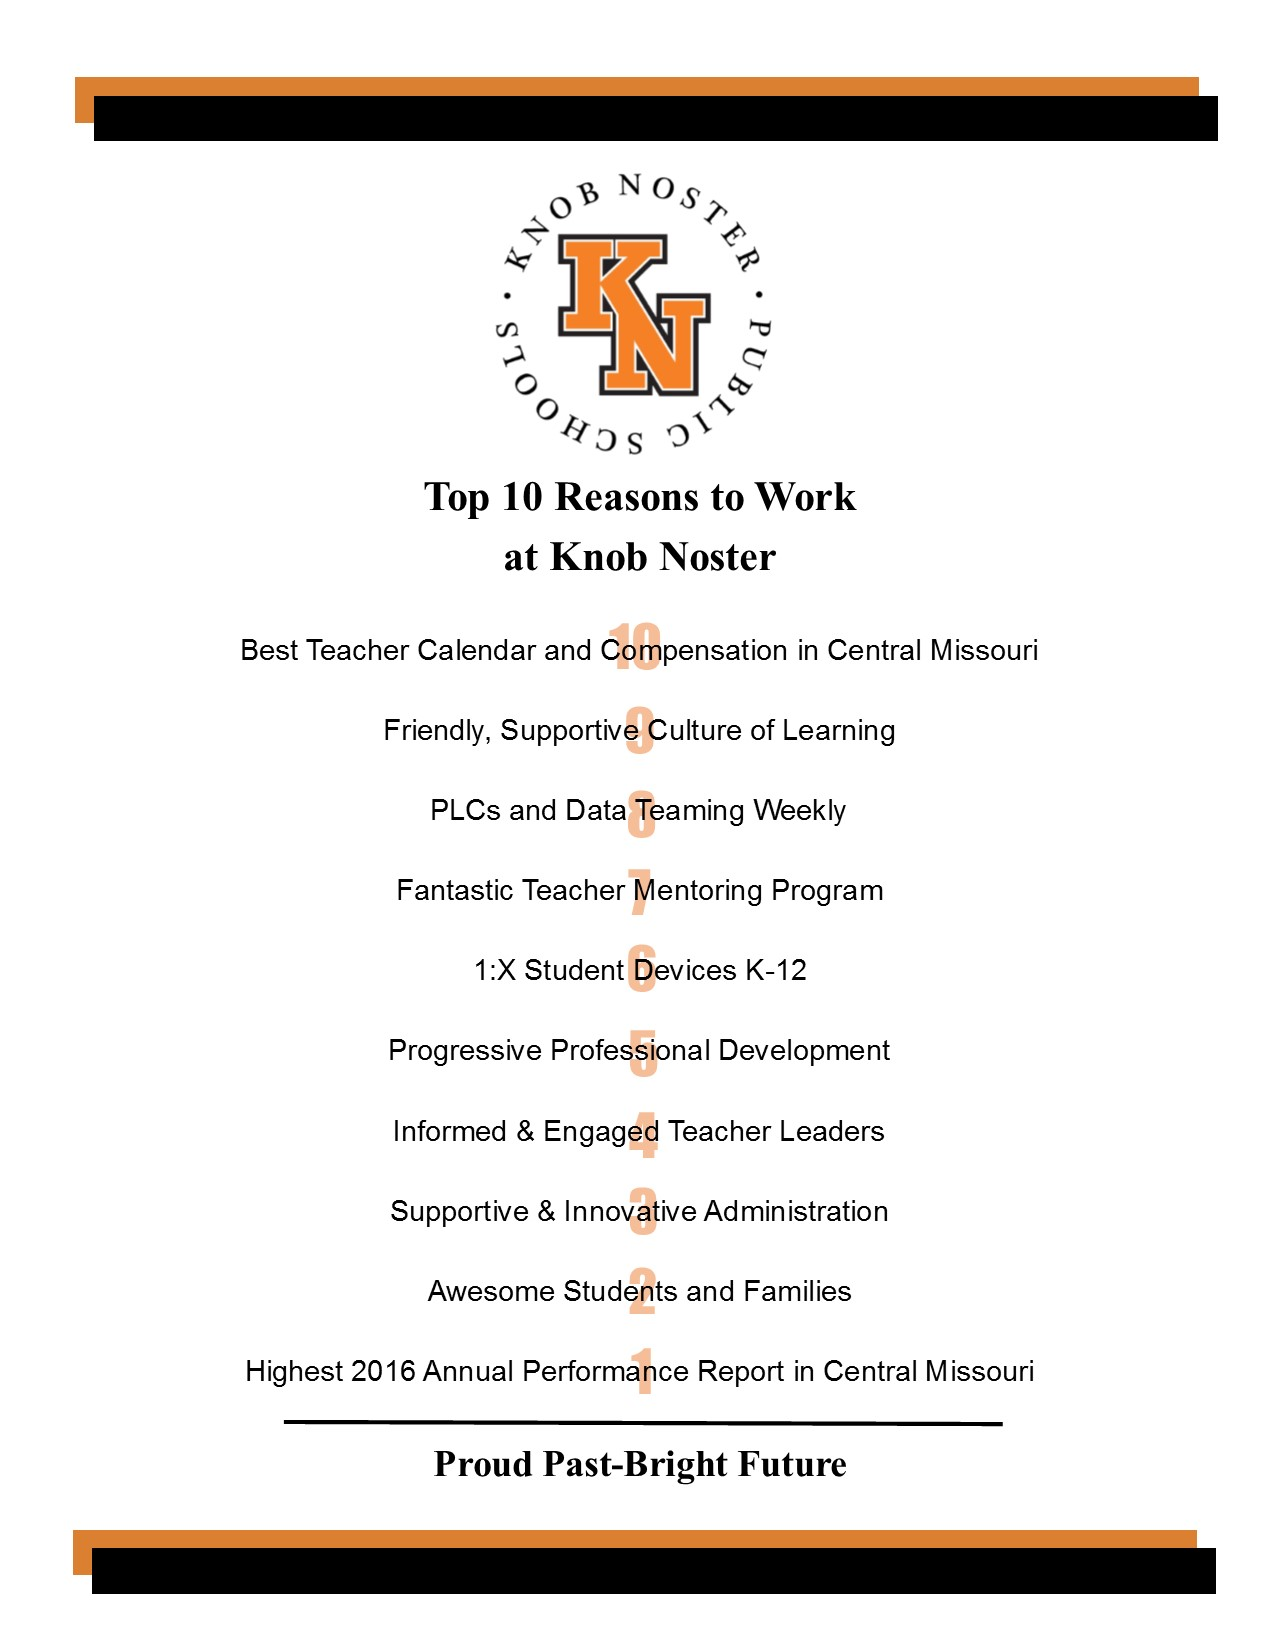 Top 10 Reasons to Work at Knob Noster